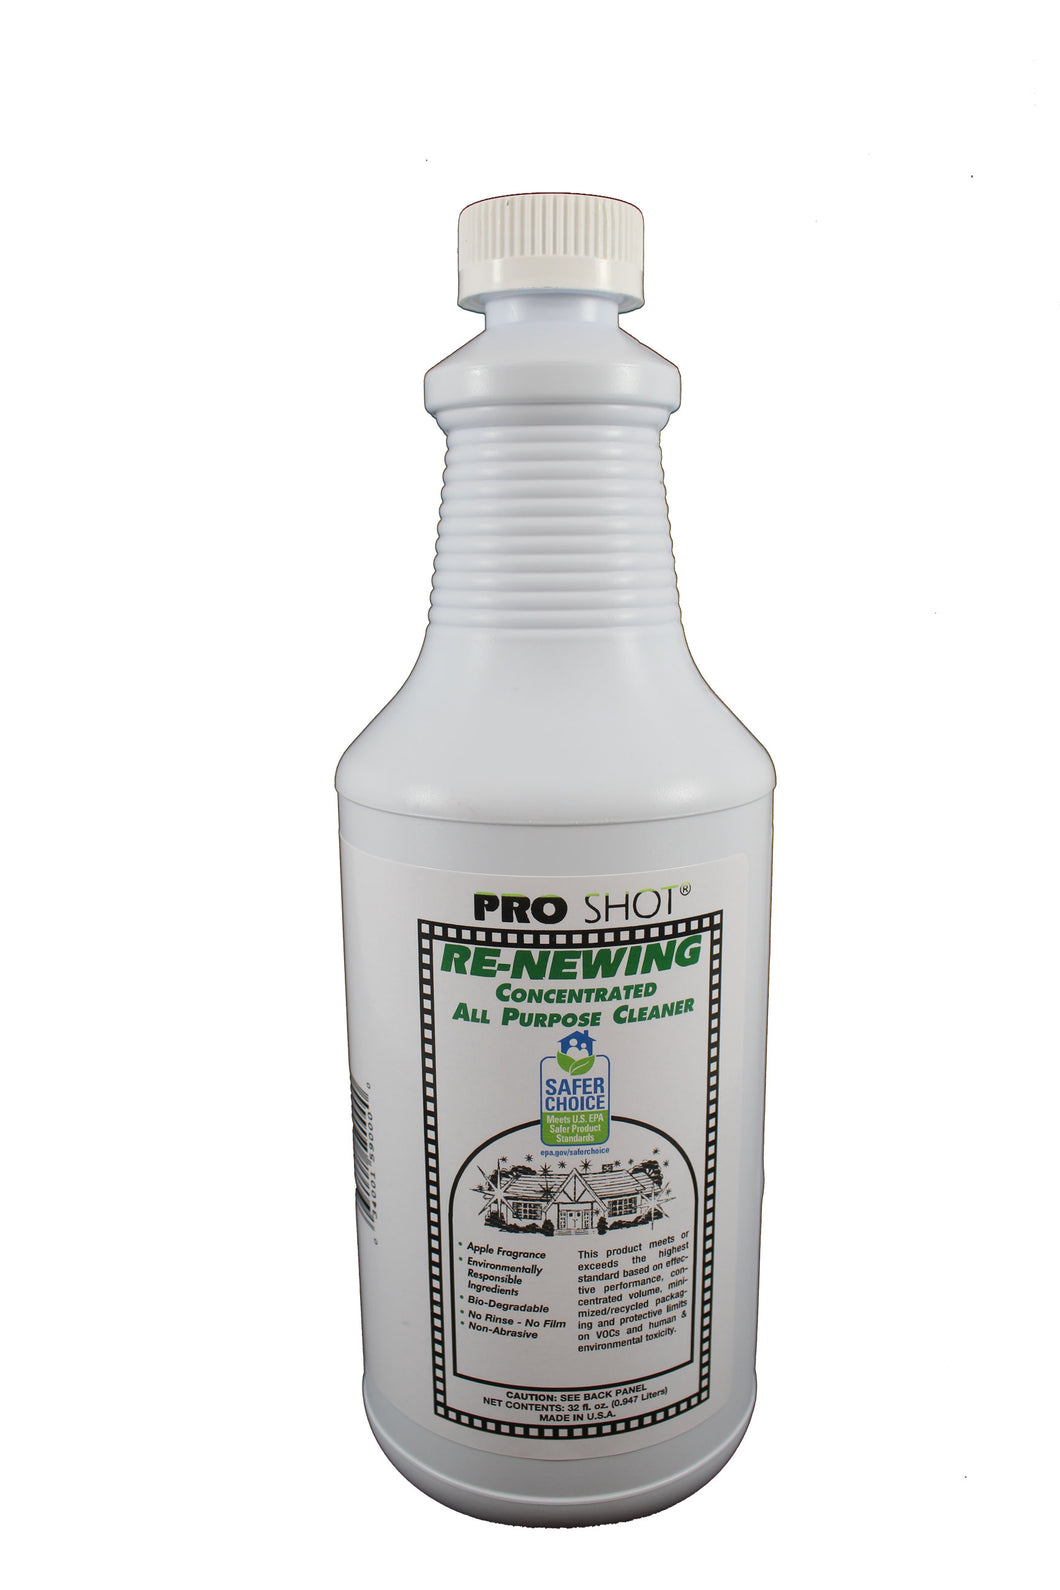 PRO SHOT® Re-Newing Concentrated All Purpose Cleaner 32 oz image